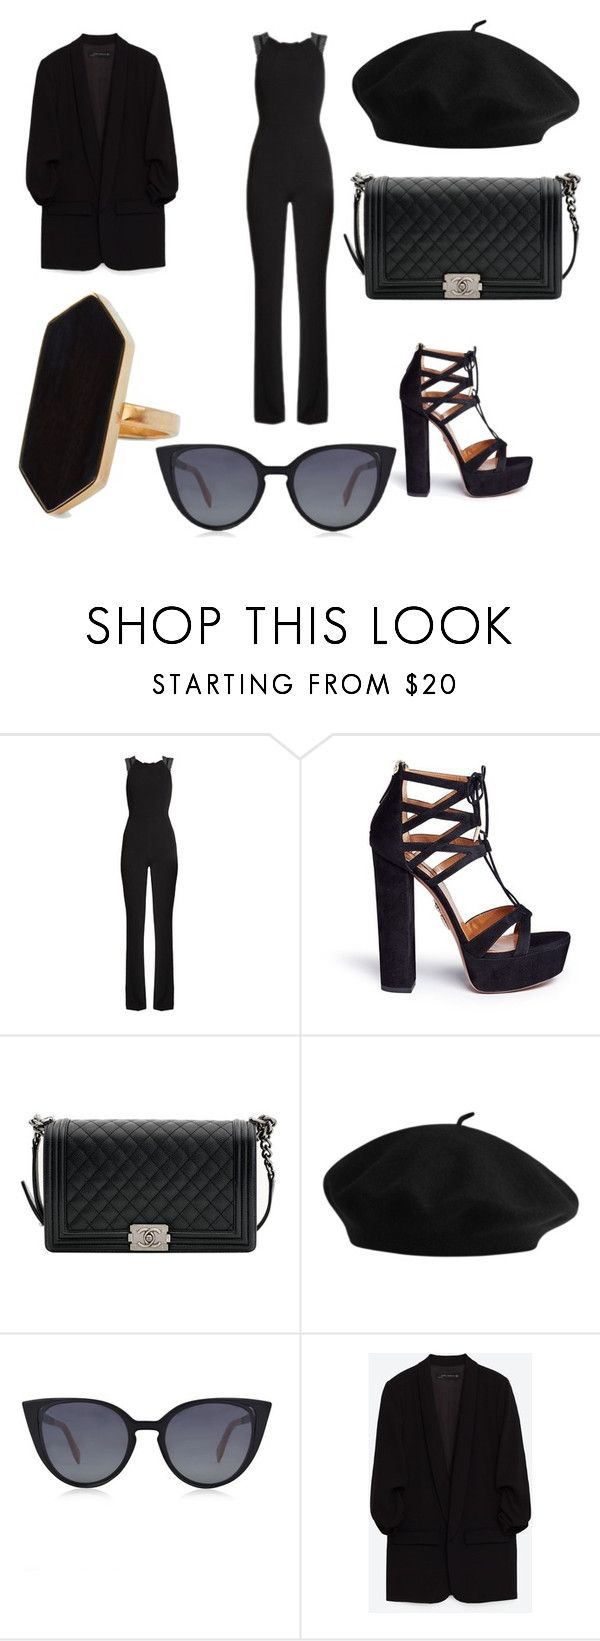 """CEO"" by malika-sparda ❤ liked on Polyvore featuring Roland Mouret, Aquazzura, Chanel, Fendi, Jaeger and sleevelessjumpsuits"